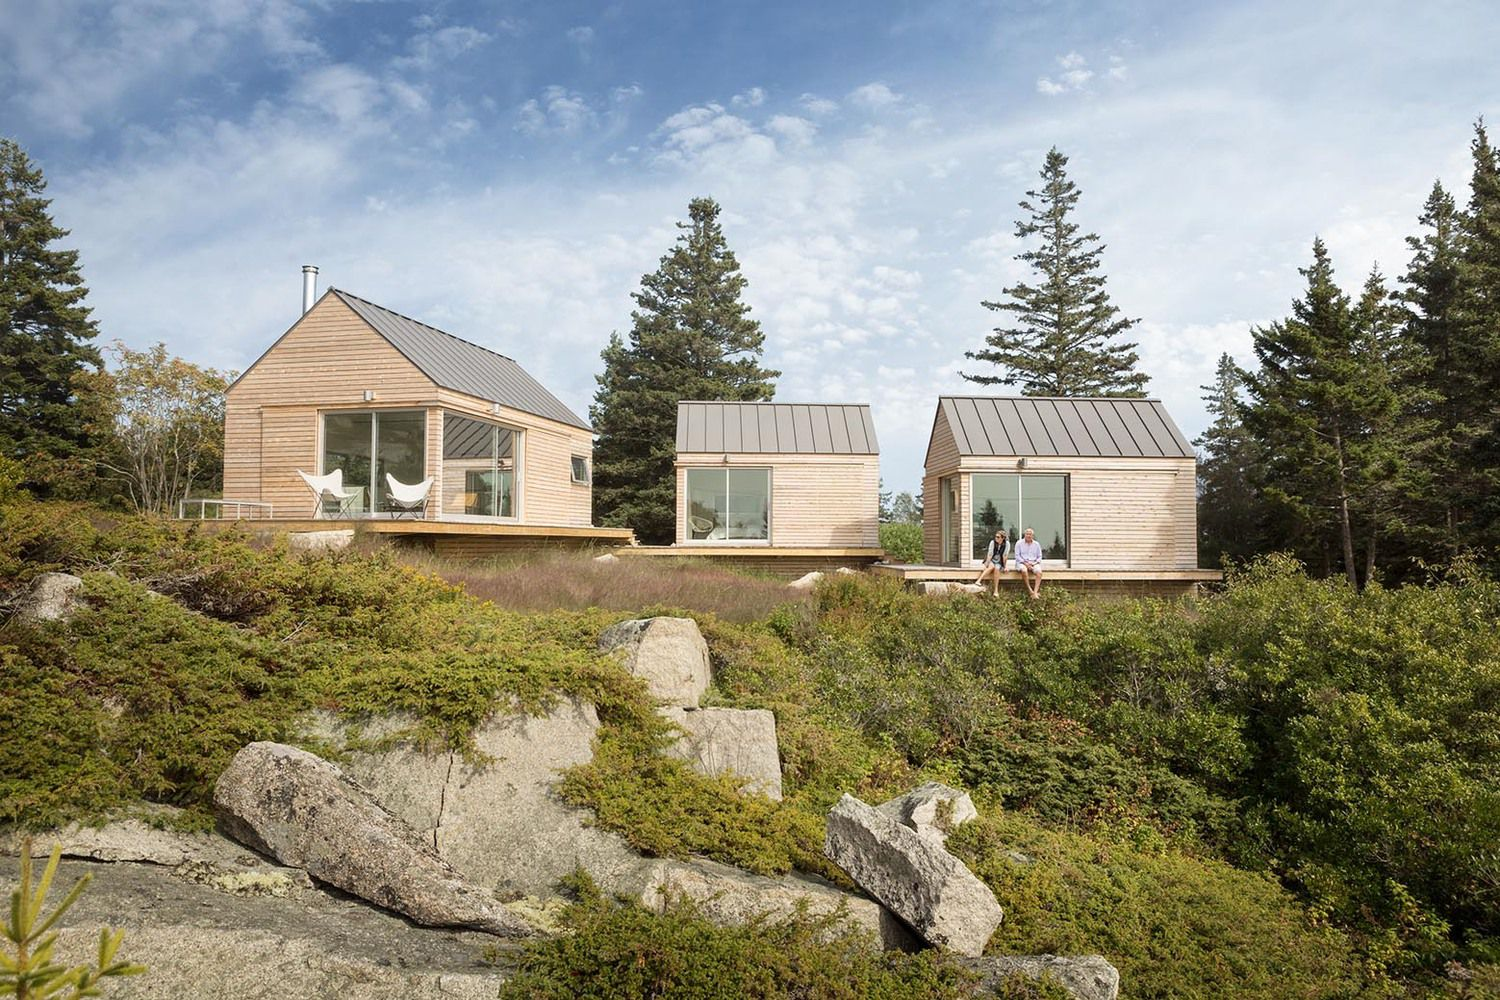 CLT panels wooden small cabins in Maine